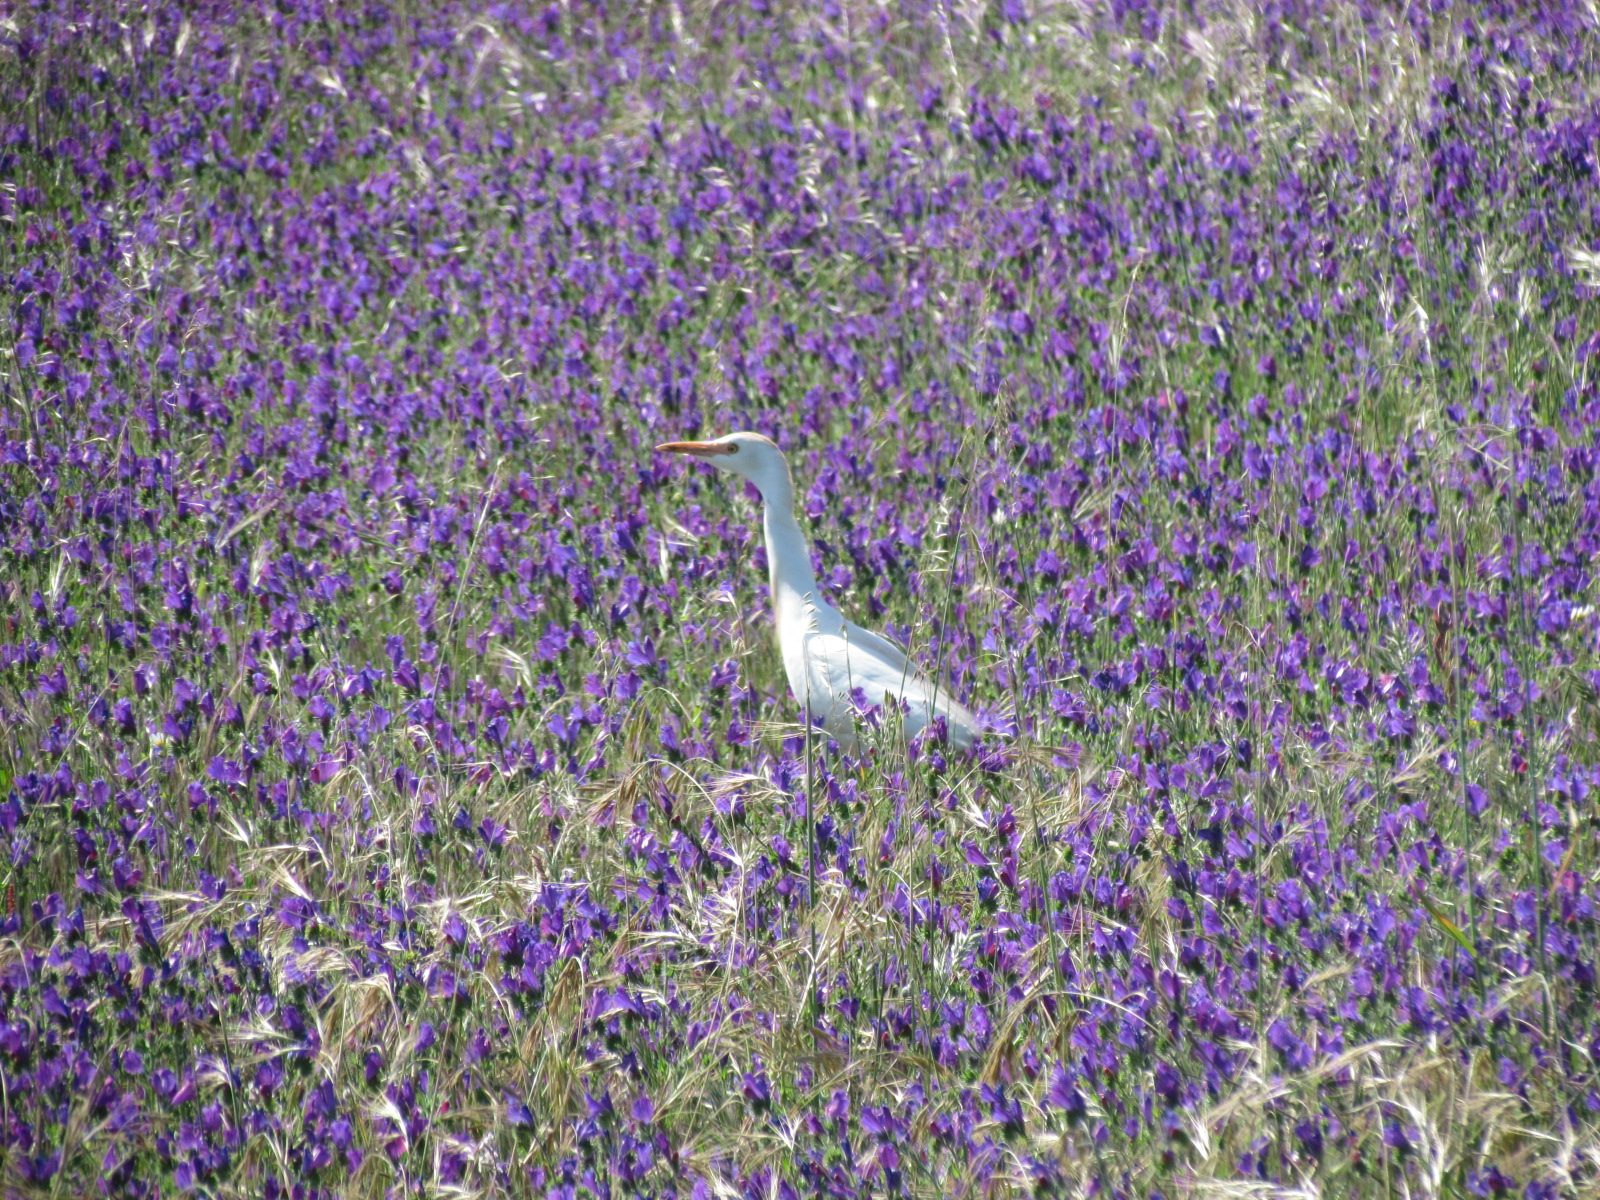 Cattle Egrei in a field of purple flowers